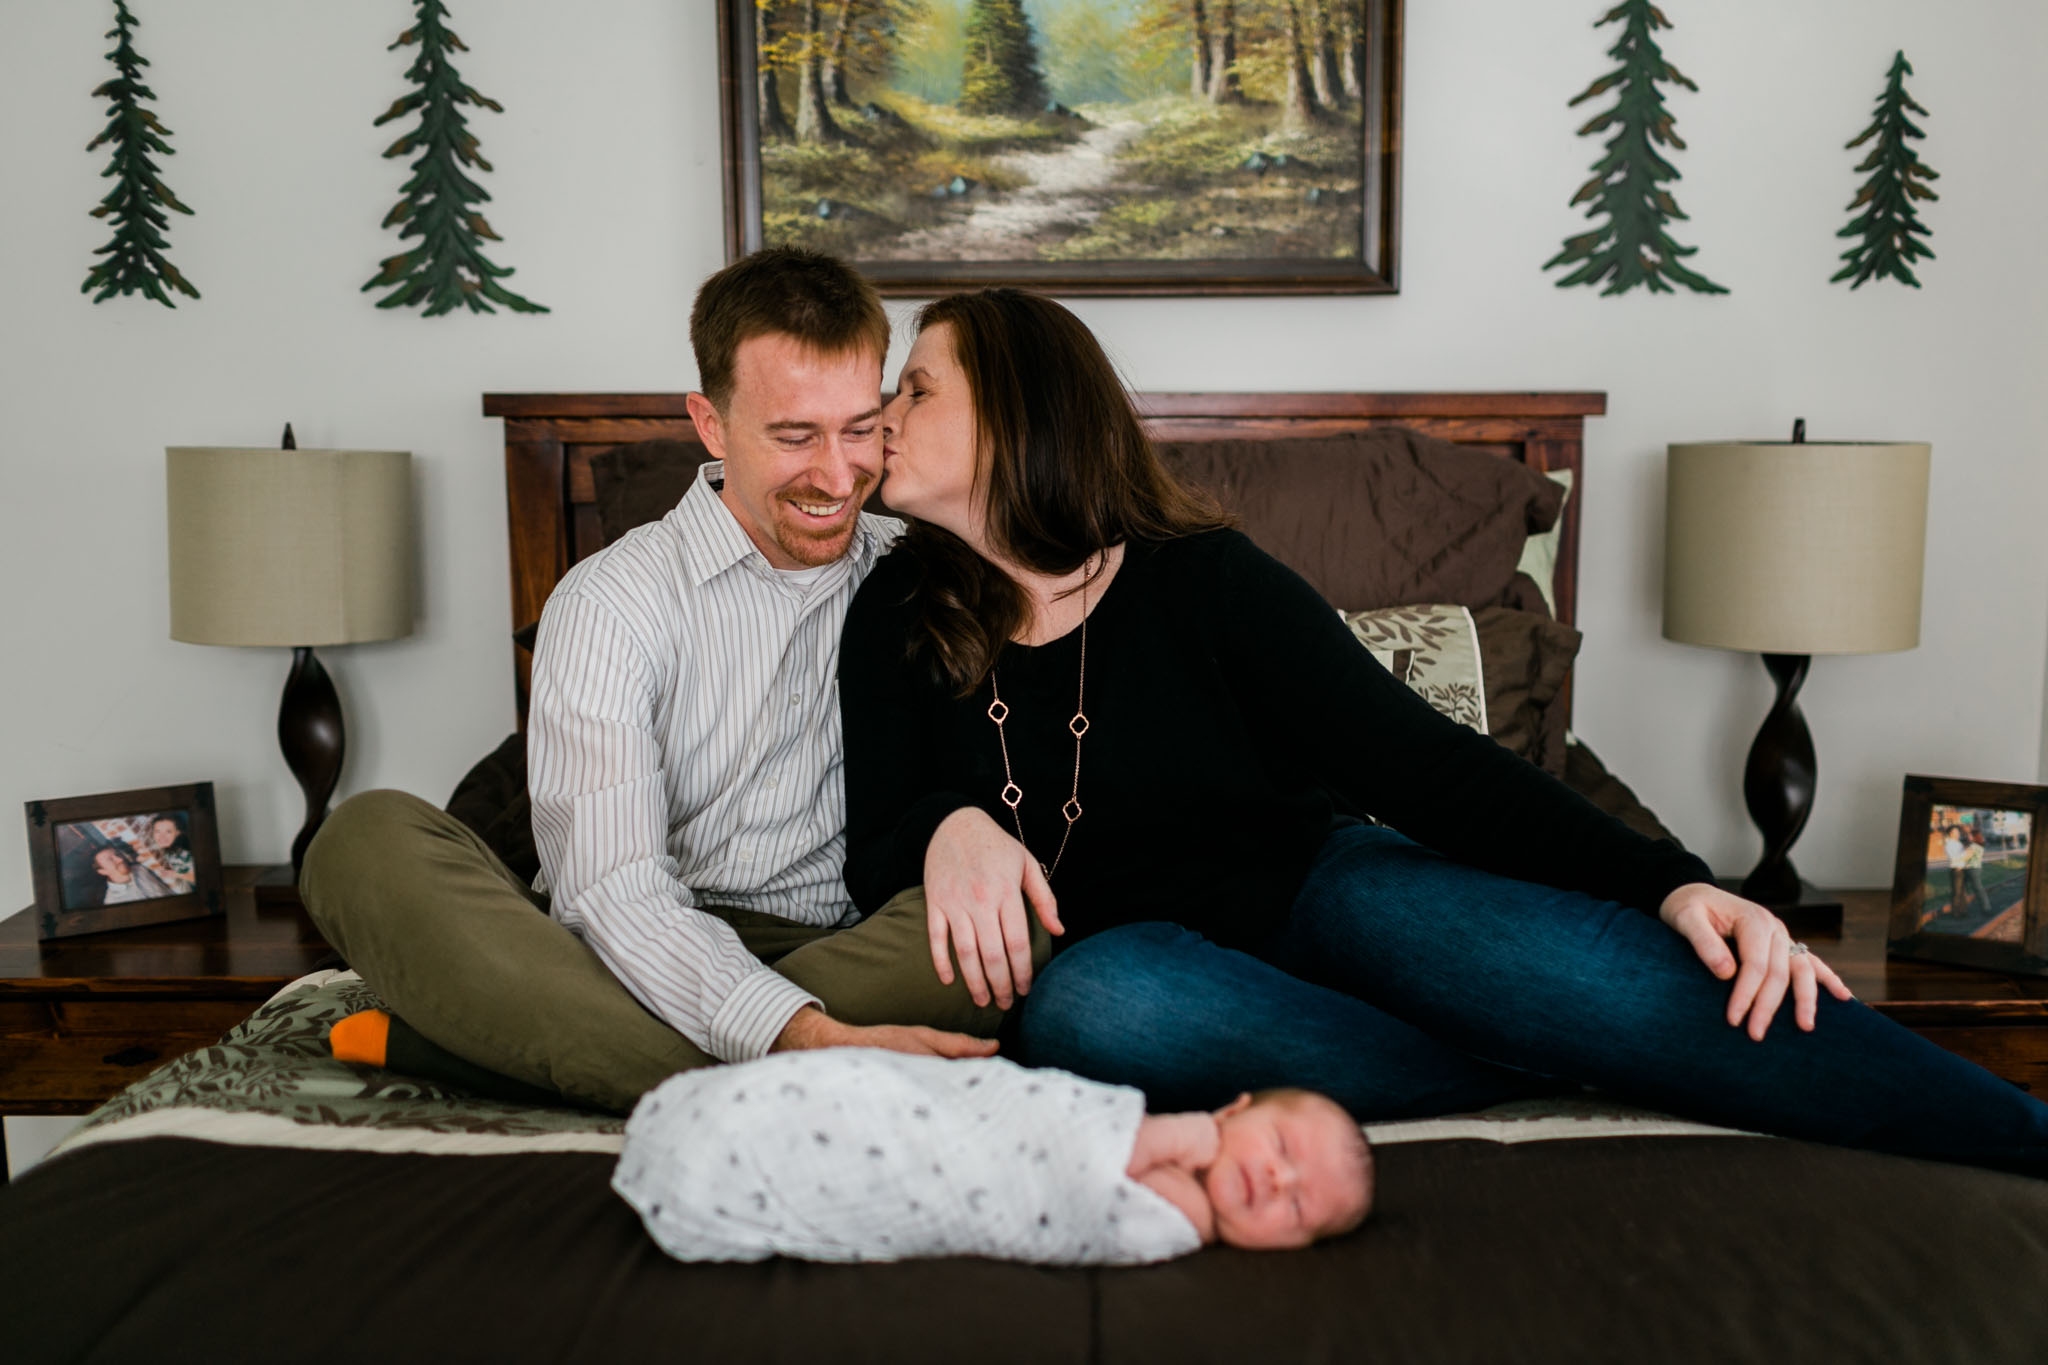 Lifestyle newborn session at home | Durham Newborn Photographer | By G. Lin Photography